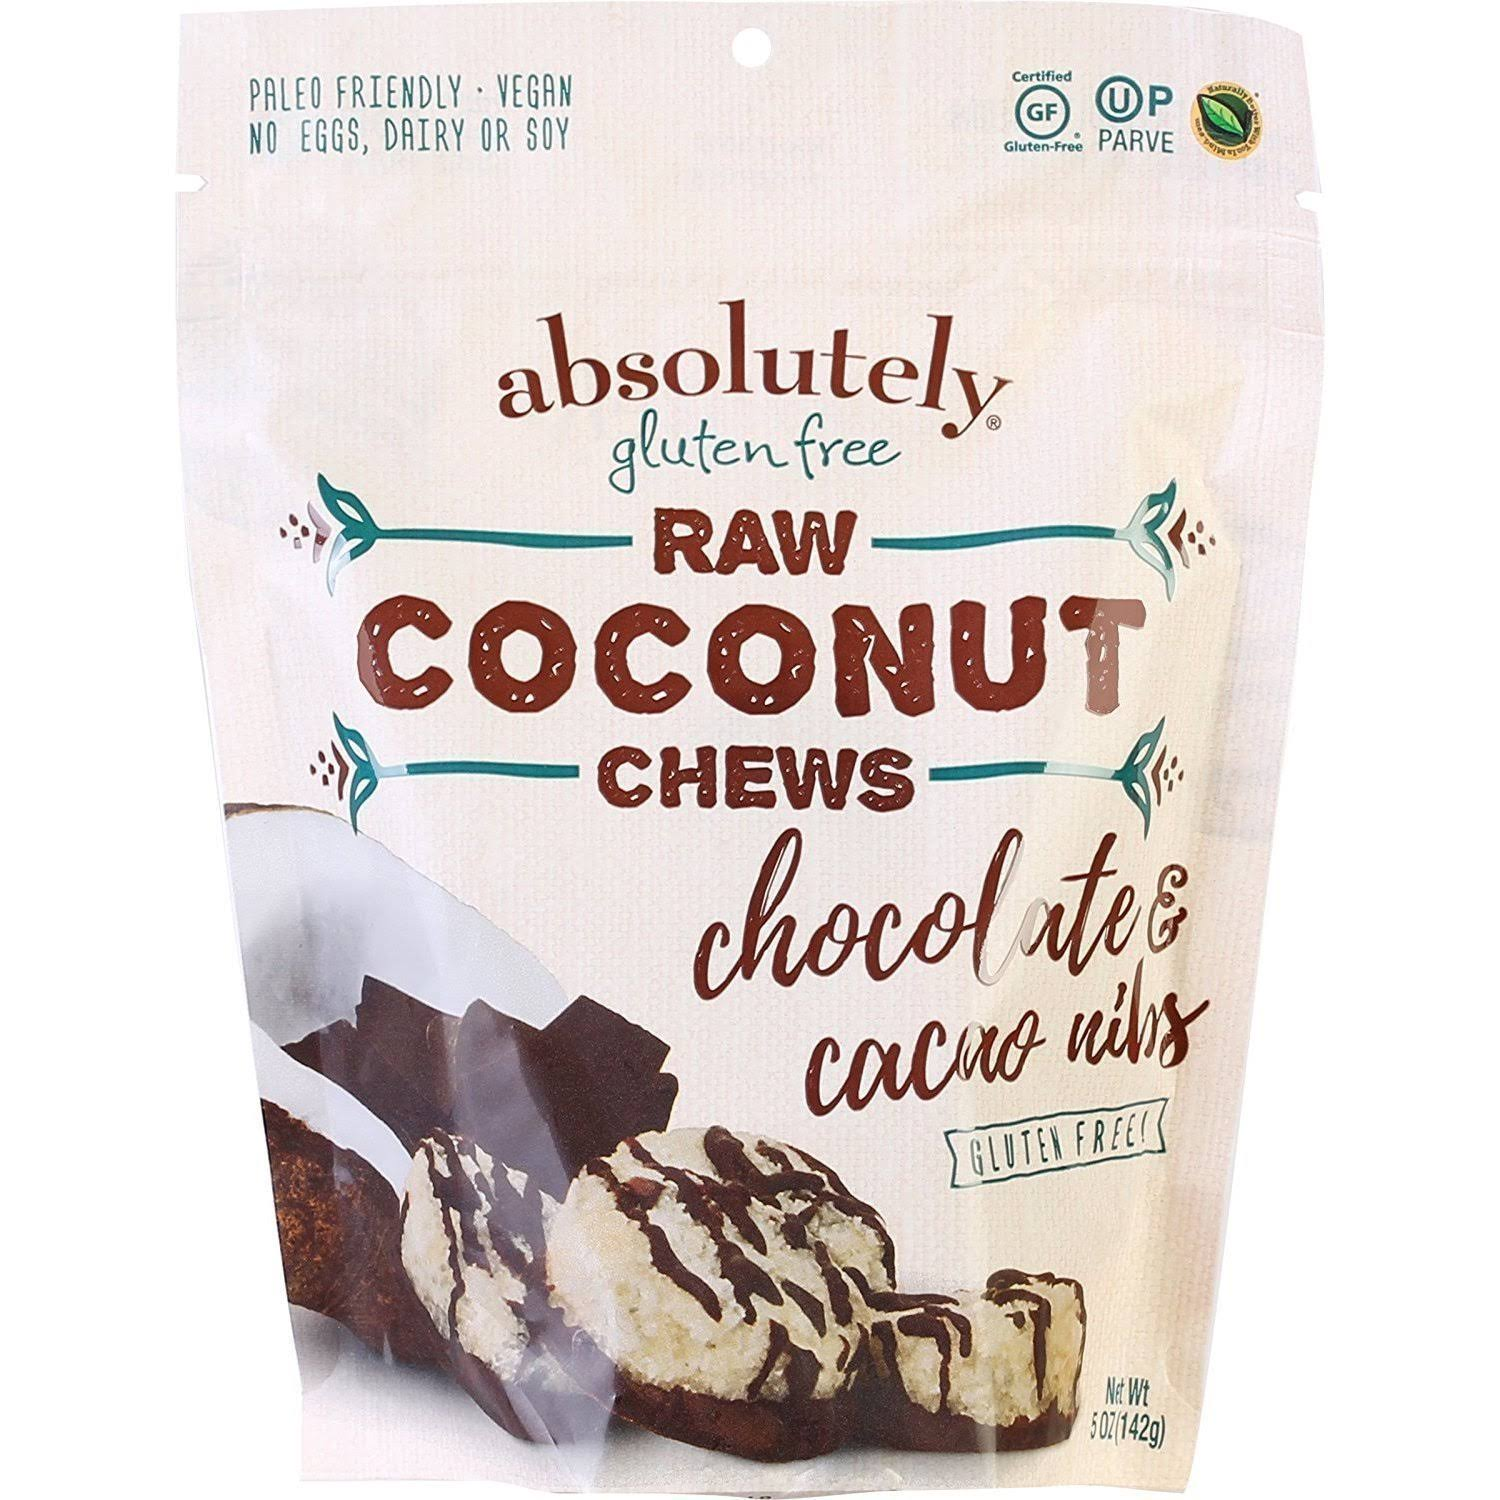 Absolutely Gluten Free Chews, Coconut Cocoa Nibs, Gluten Free - Pack of 12